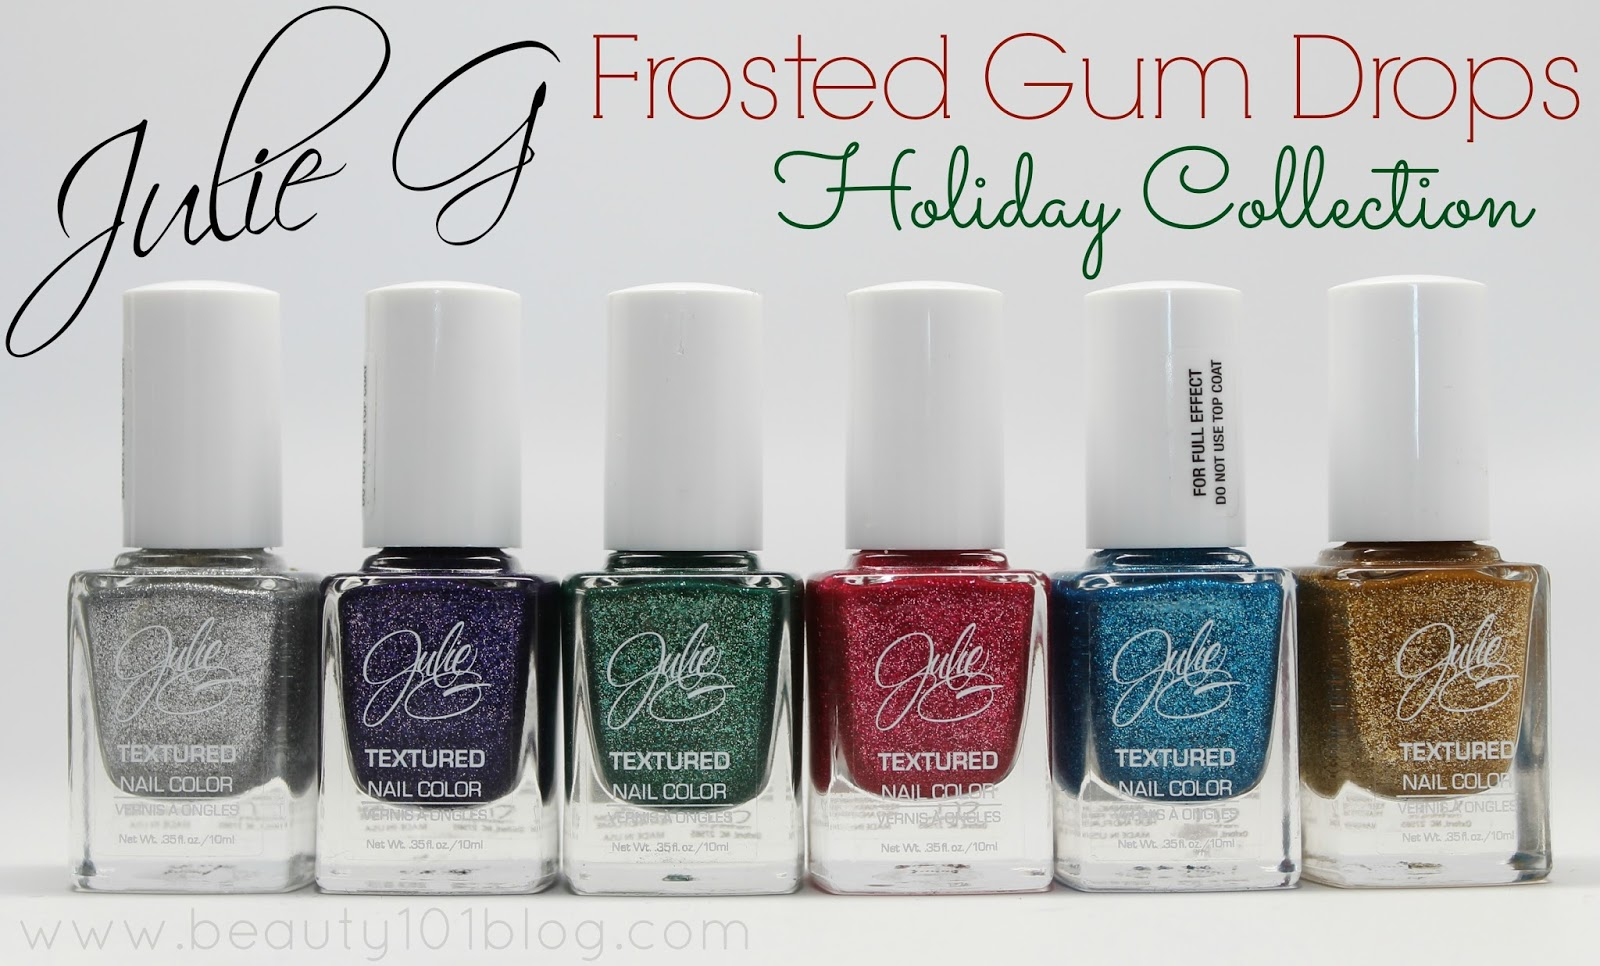 Julie G Frosted Gum Drops Holiday Collection Review + Swatches ...